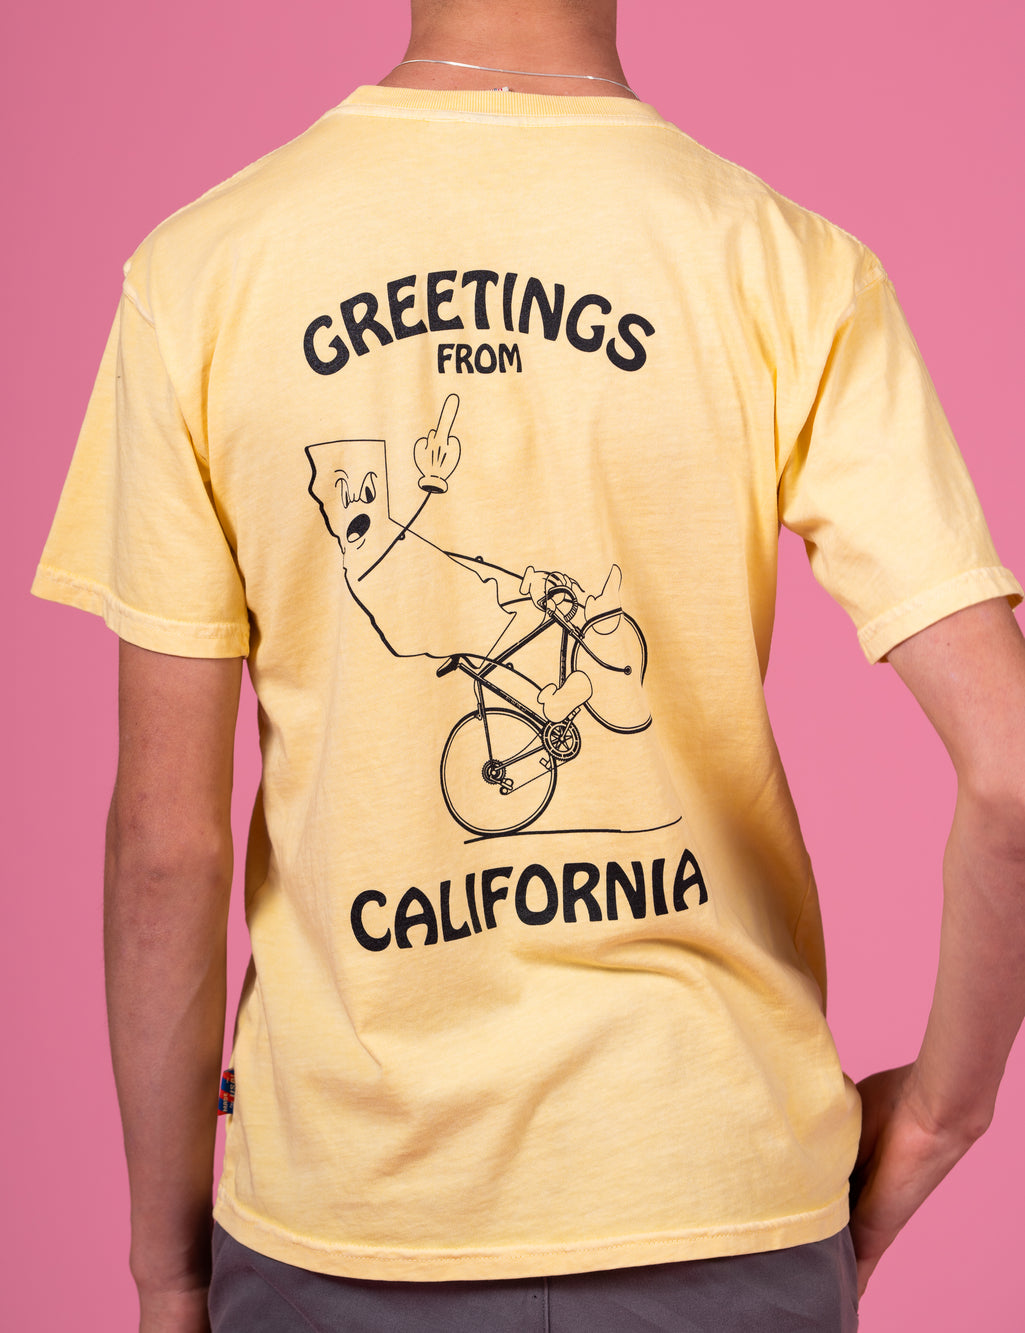 Greetings From Cali Heavyweight Pocket T's